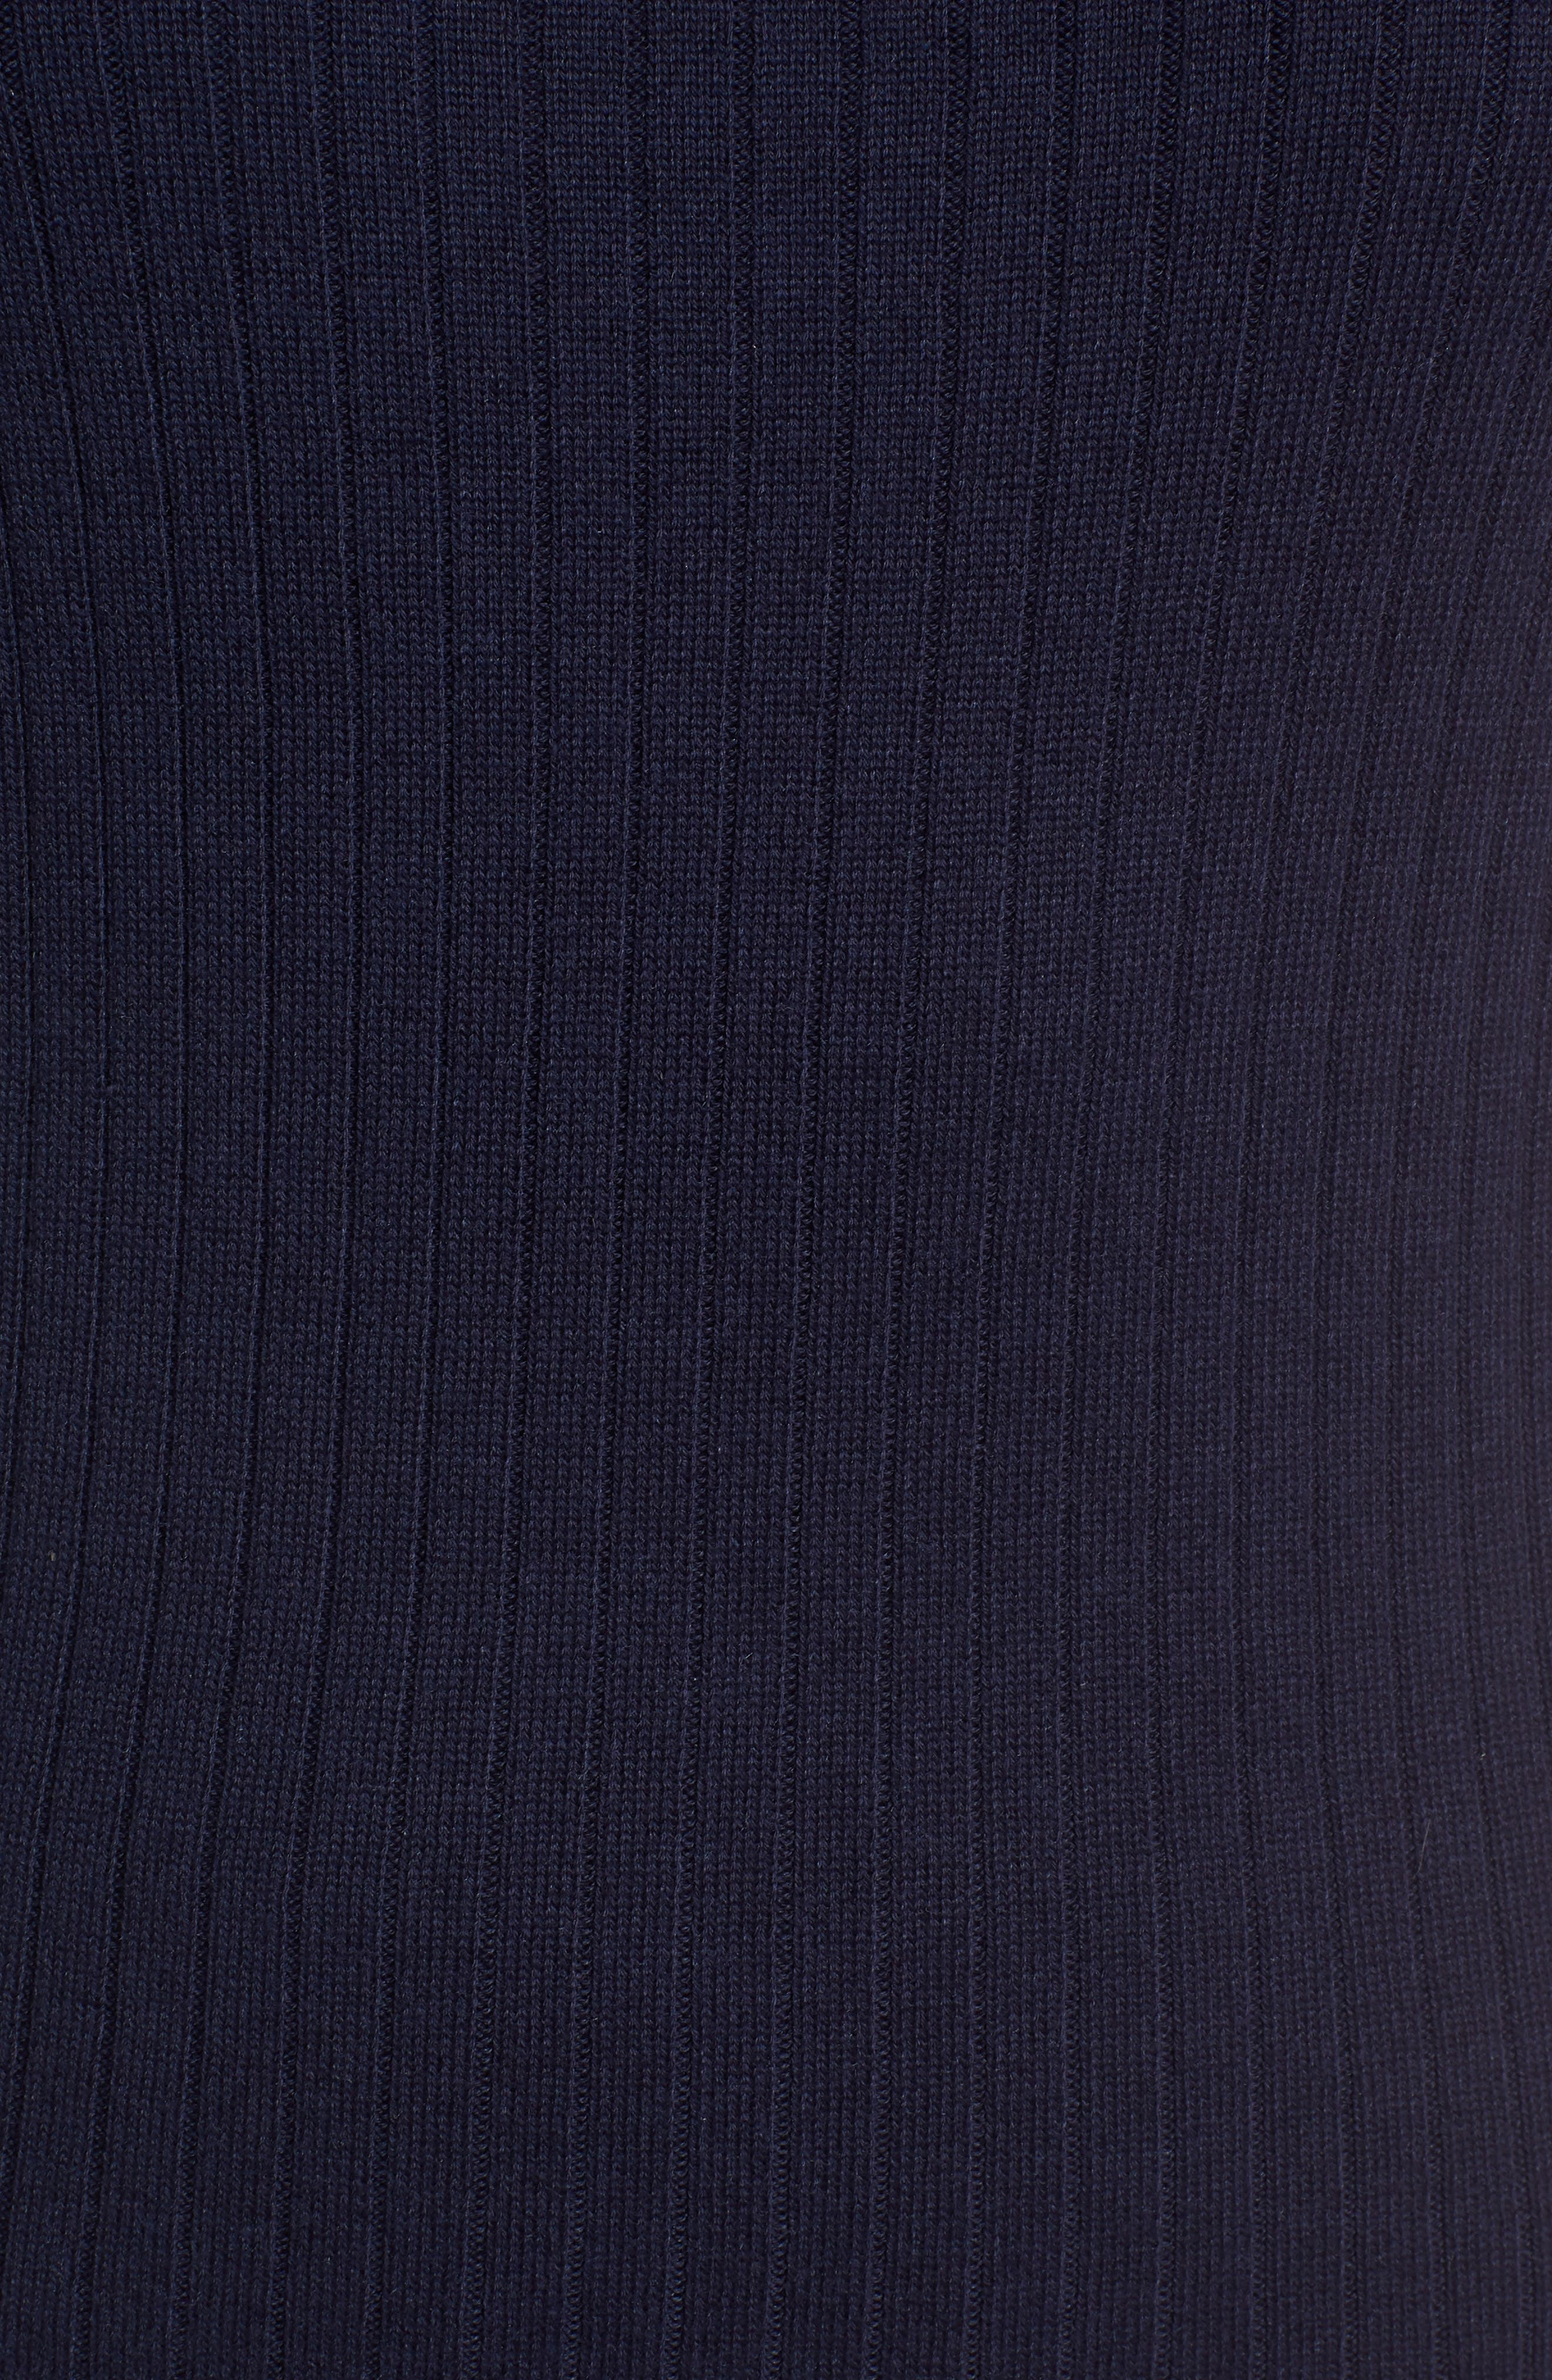 Tipped Cotton Blend Ribbed Sweater,                             Alternate thumbnail 5, color,                             Navy Peacoat